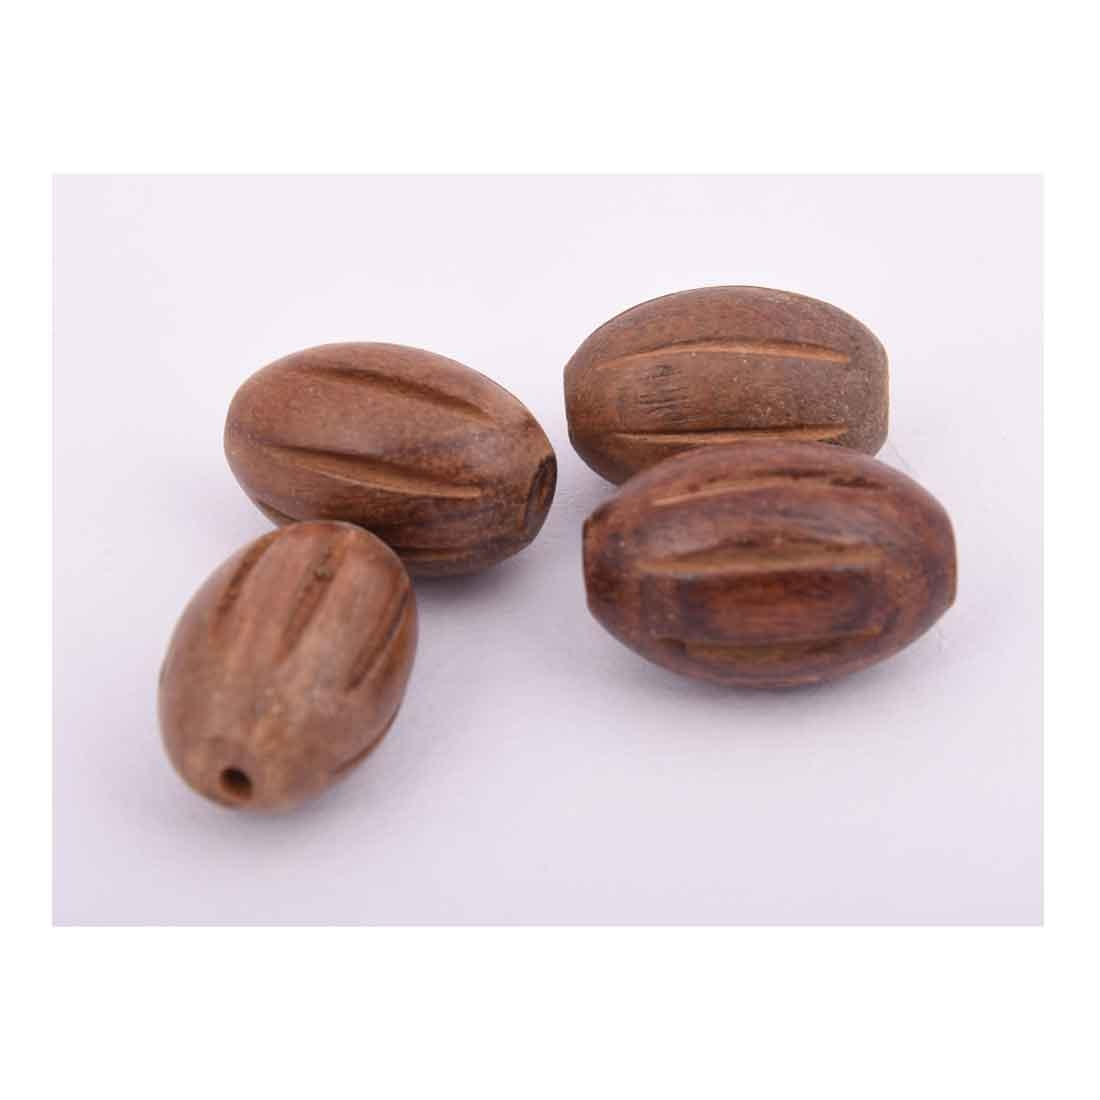 Beads India 1700013 Handcrafted Wooden Beads/Discounts Above 500 pcs